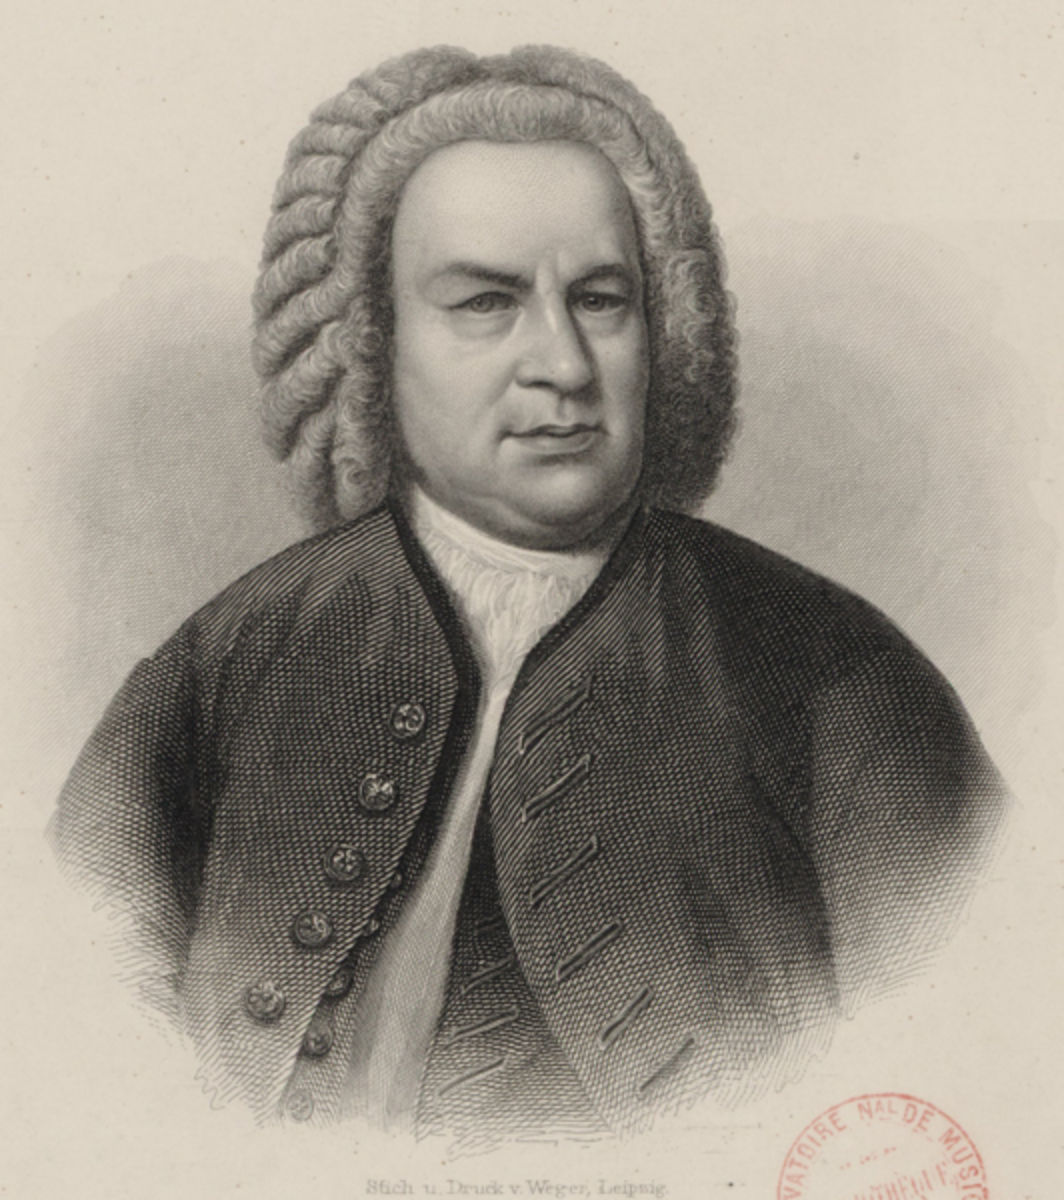 J.S. Bach, a giant among Baroque keyboard players and composers